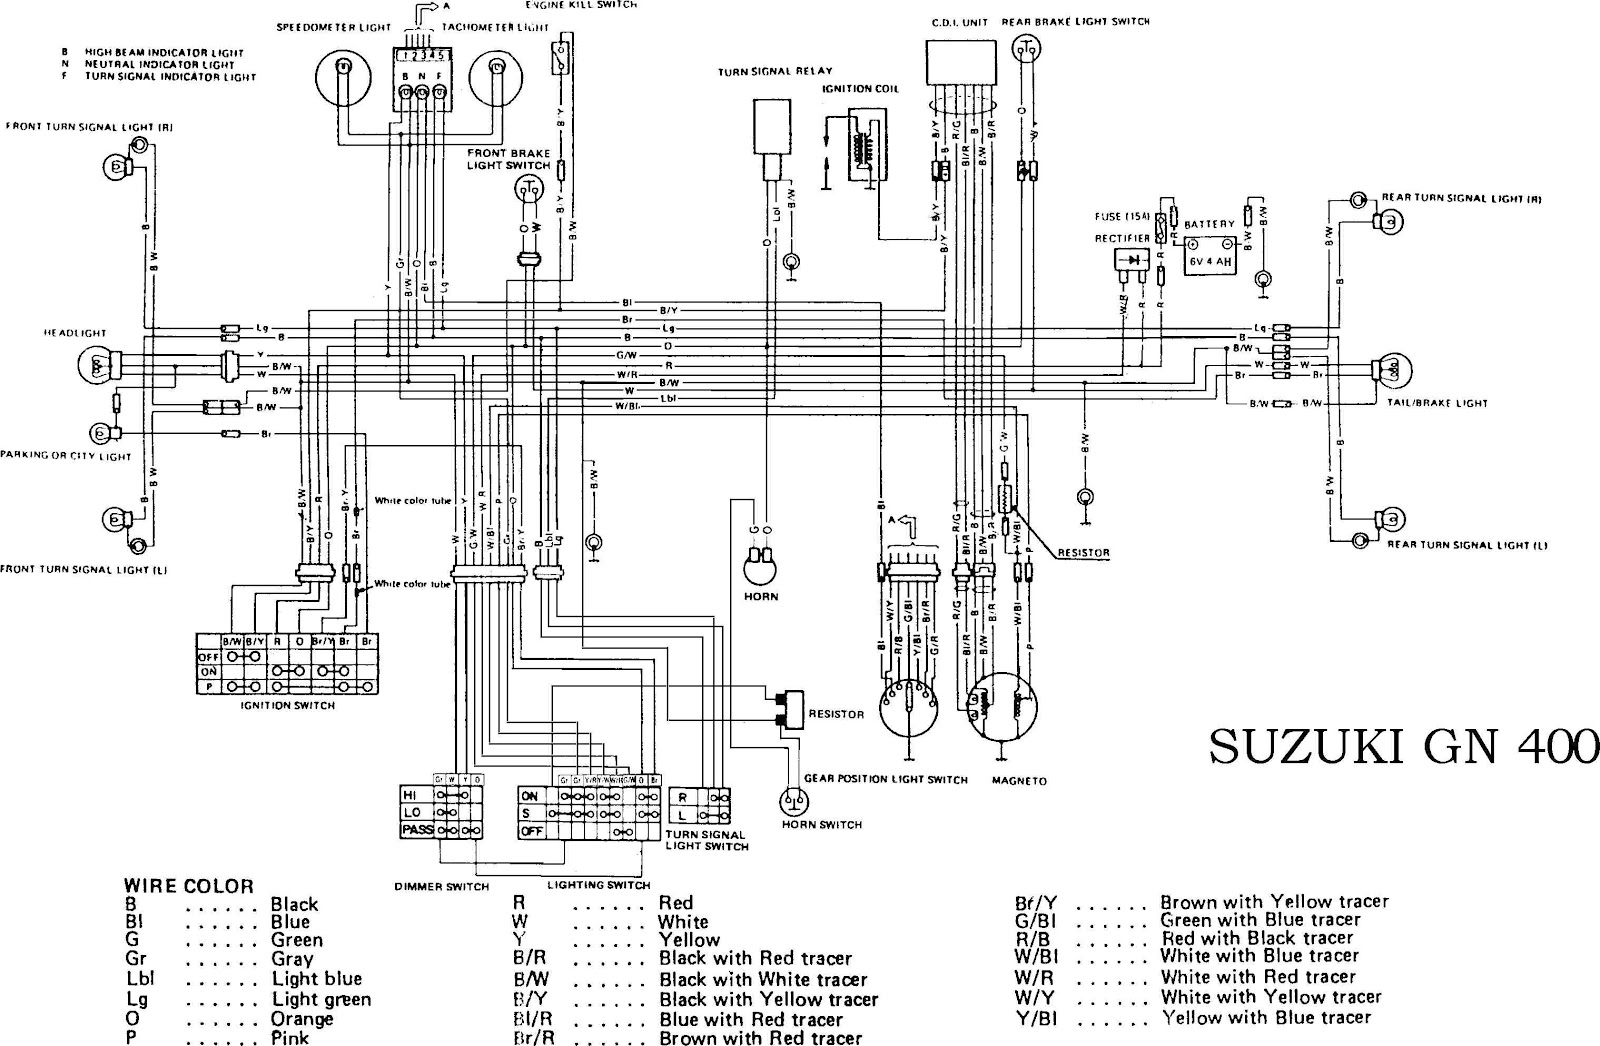 Suzuki+GN400+motorcycle+Complete+Electrical+Wiring+Diagram?resize=665%2C435 motorcycle electrical wiring diagram the best wiring diagram 2017 z650 wiring diagram at reclaimingppi.co